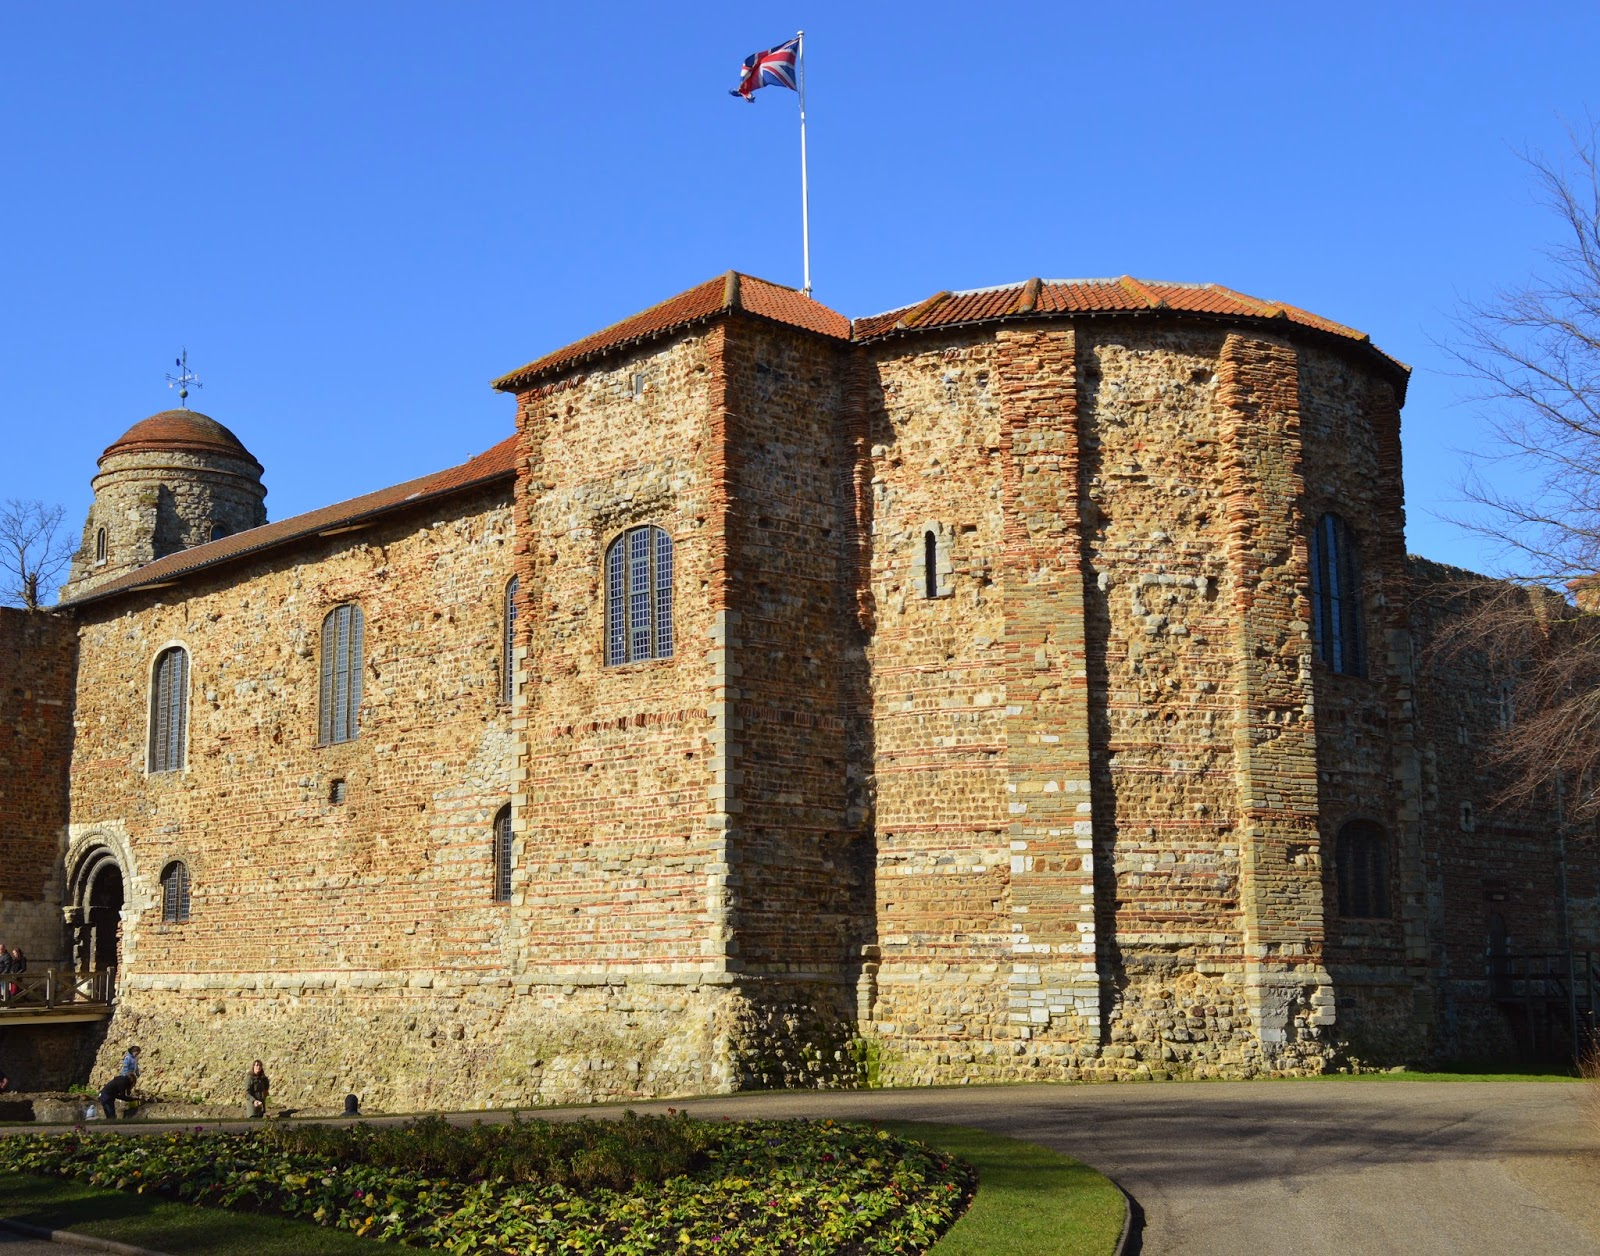 Colchester, Castle, visit, photos, photography, pictures, Roman, Norman, Celt, review, day trip, entrance, Essex, things to do